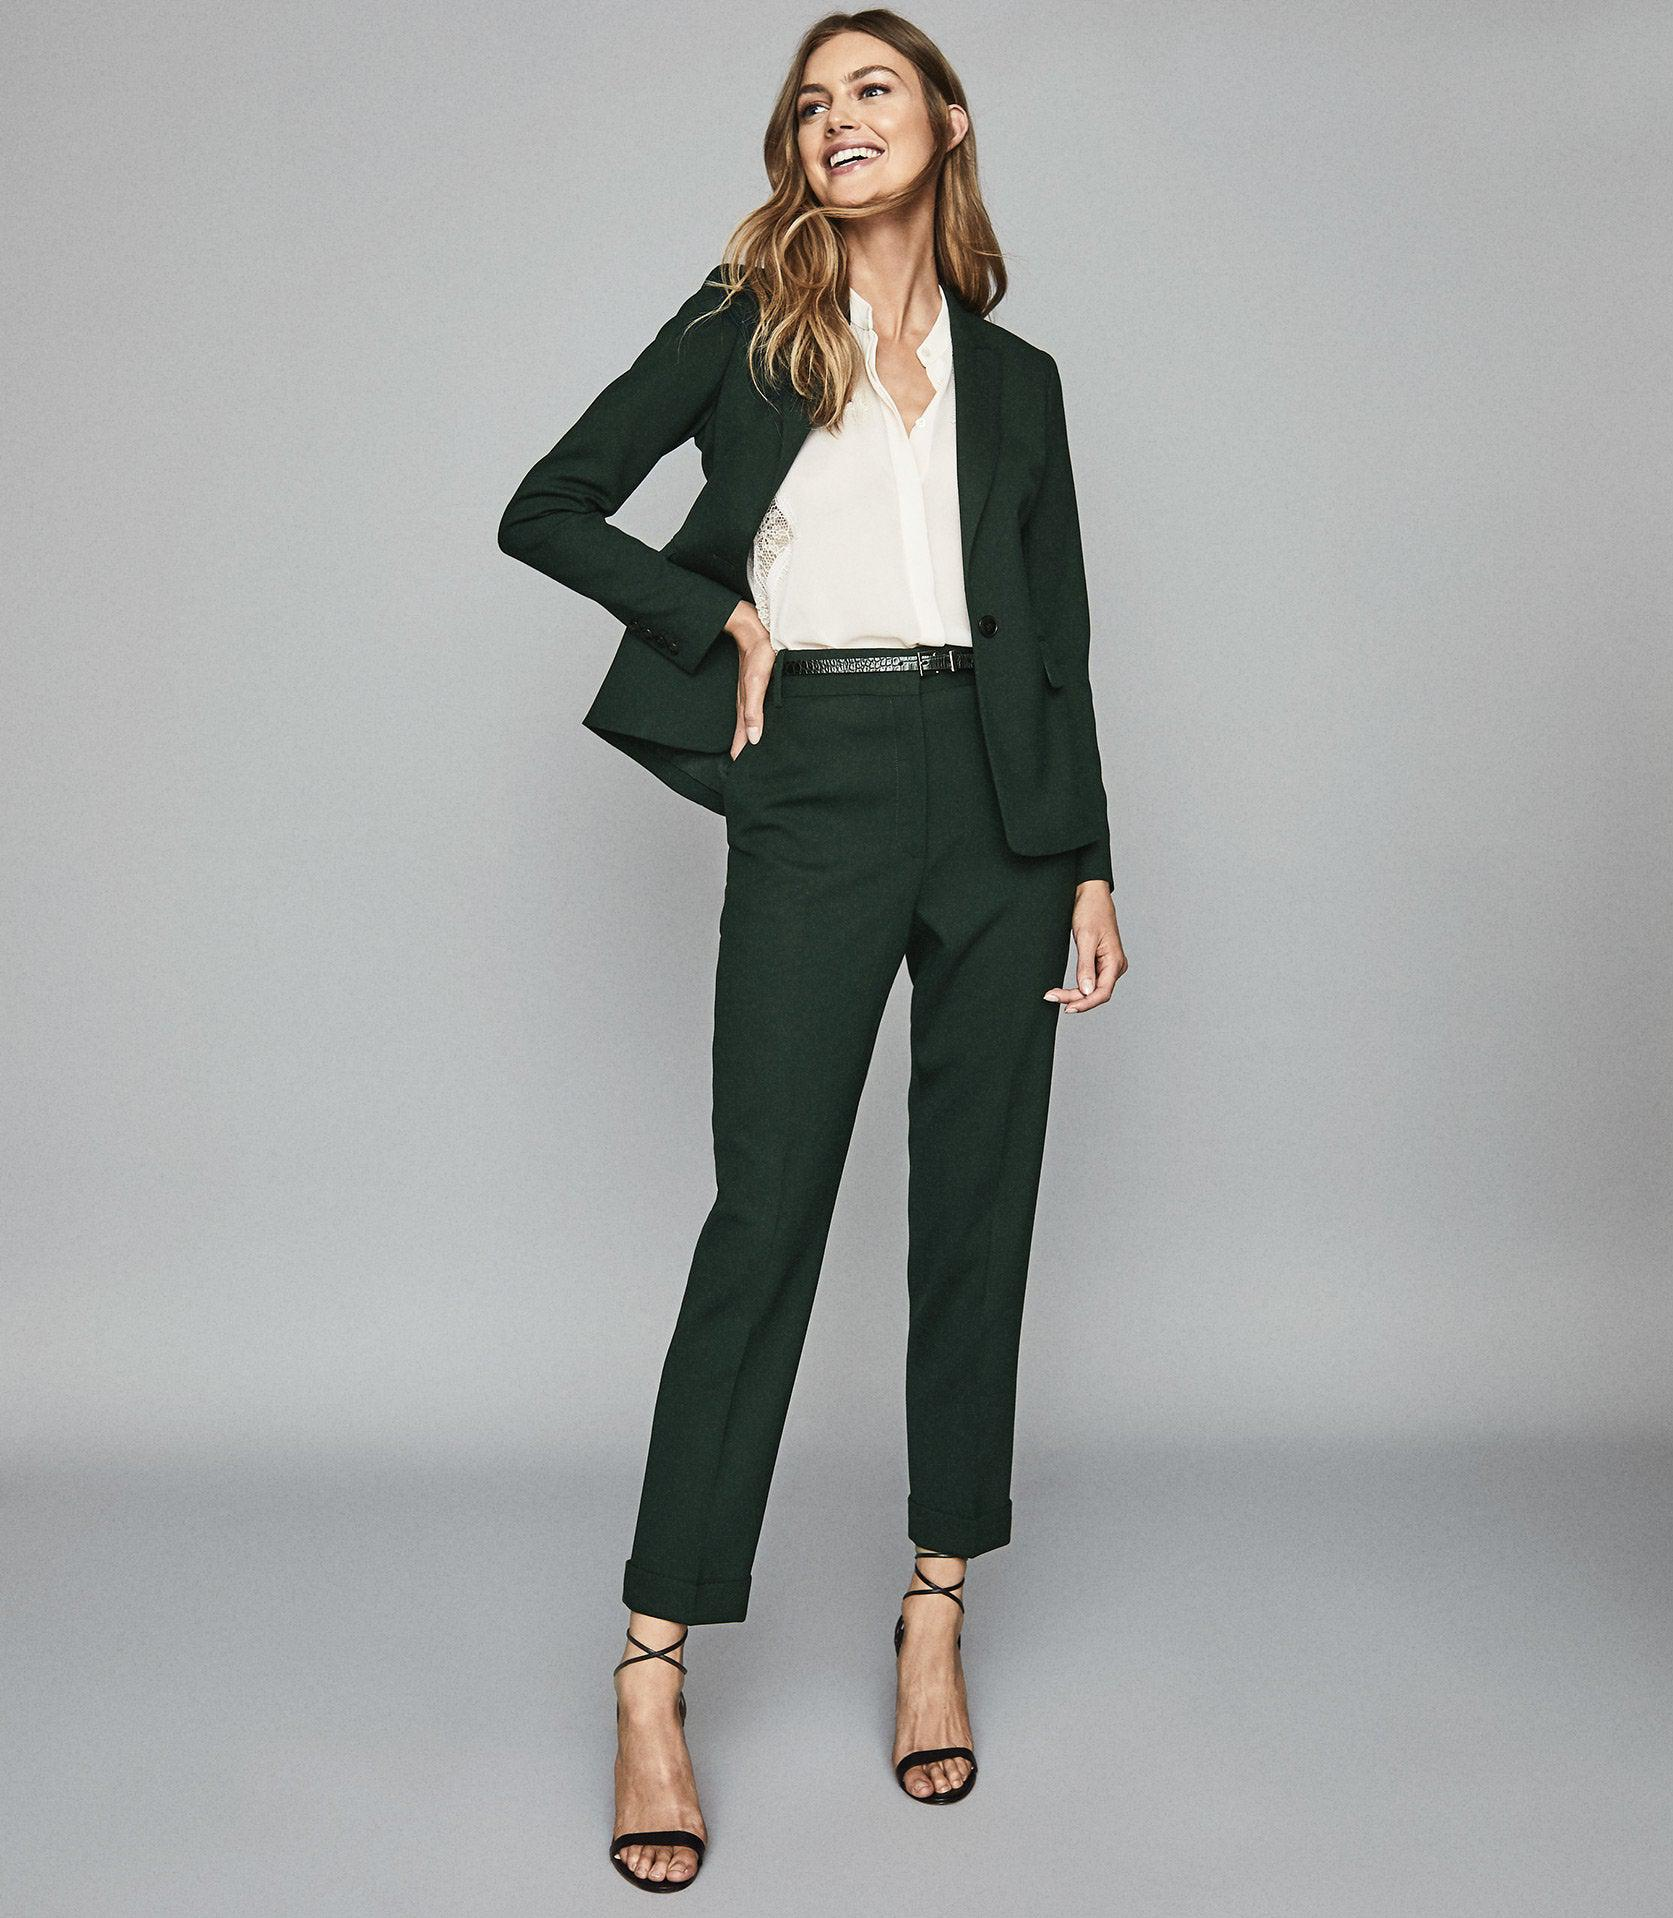 GINNIE TROUSER - SLIM FIT TAILORED TROUSERS